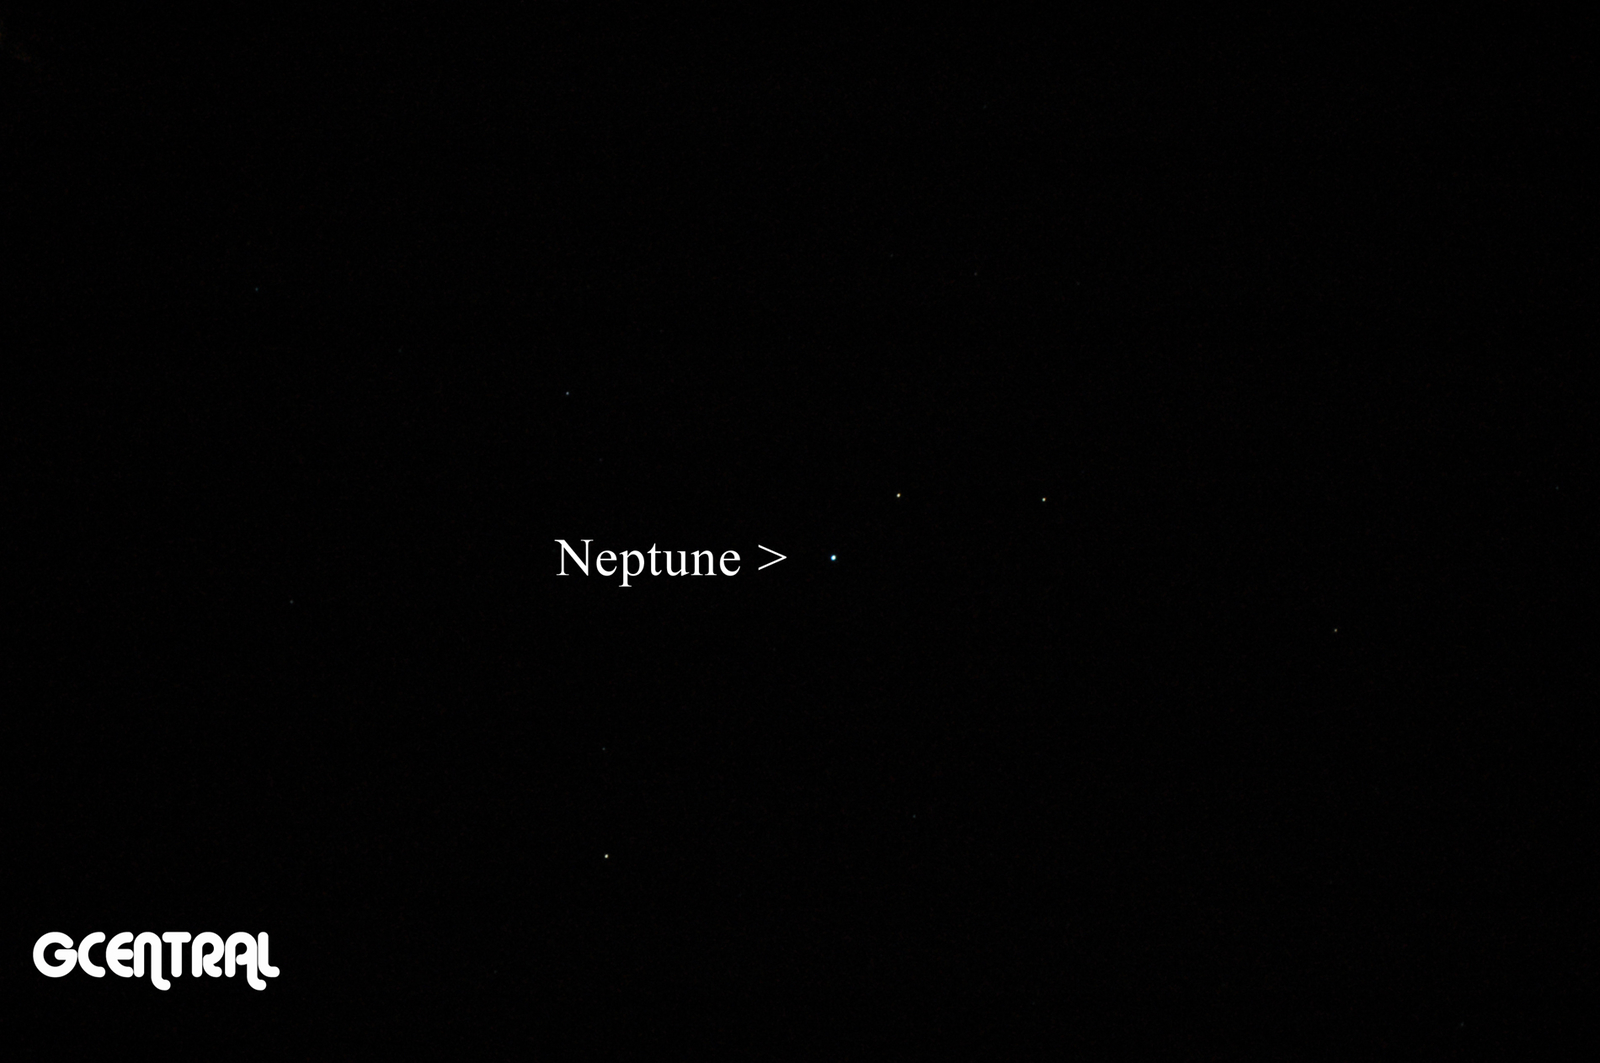 Neptune (Prime Focus) October 20, 2017